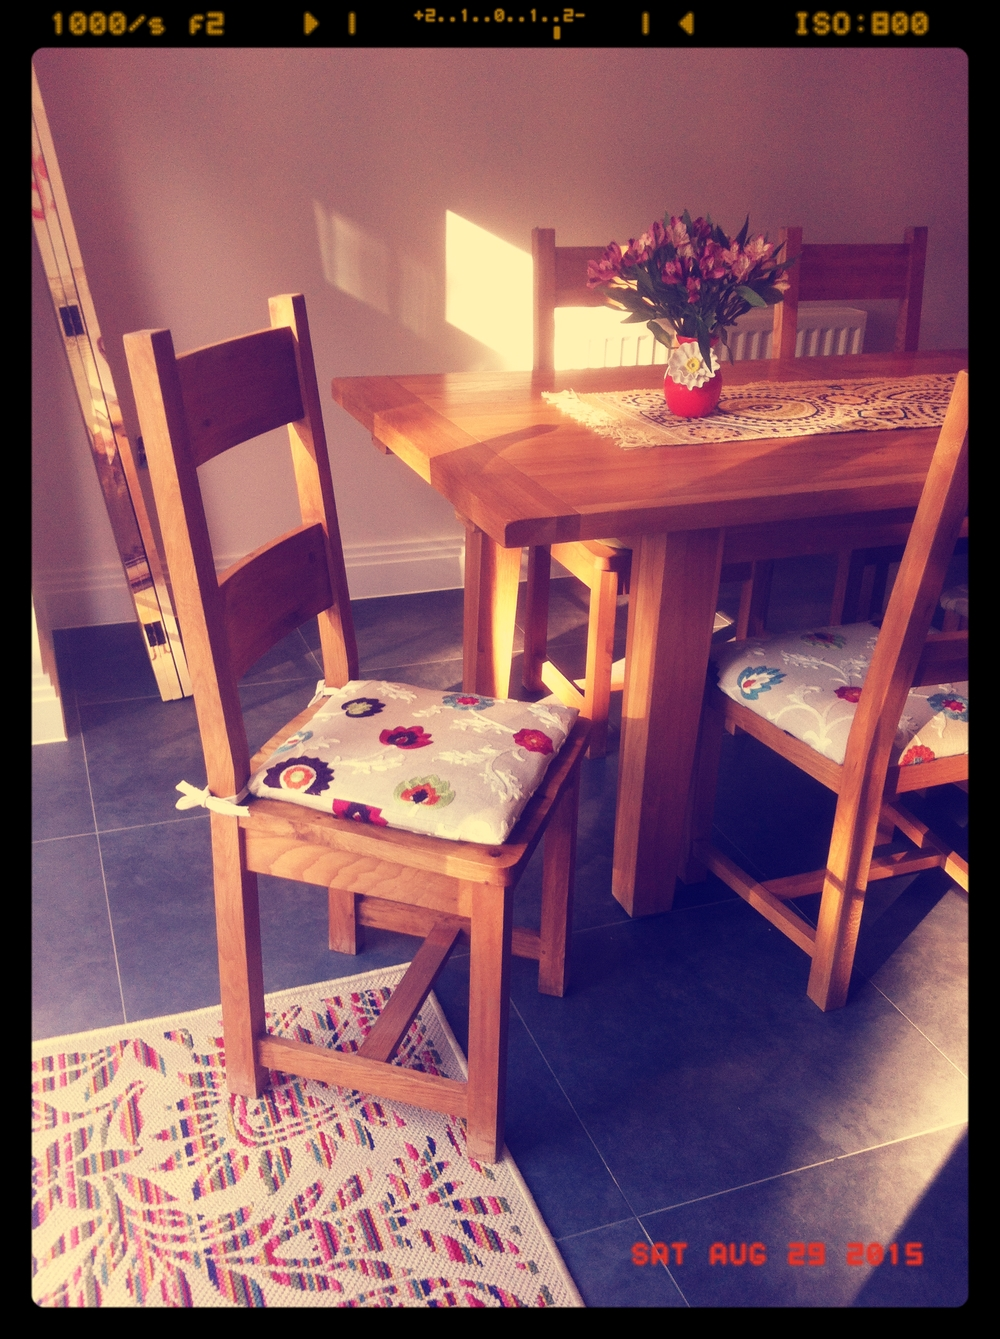 The lovely seat cushions in situ with the sun streaming through the window makes for a perfect photo!